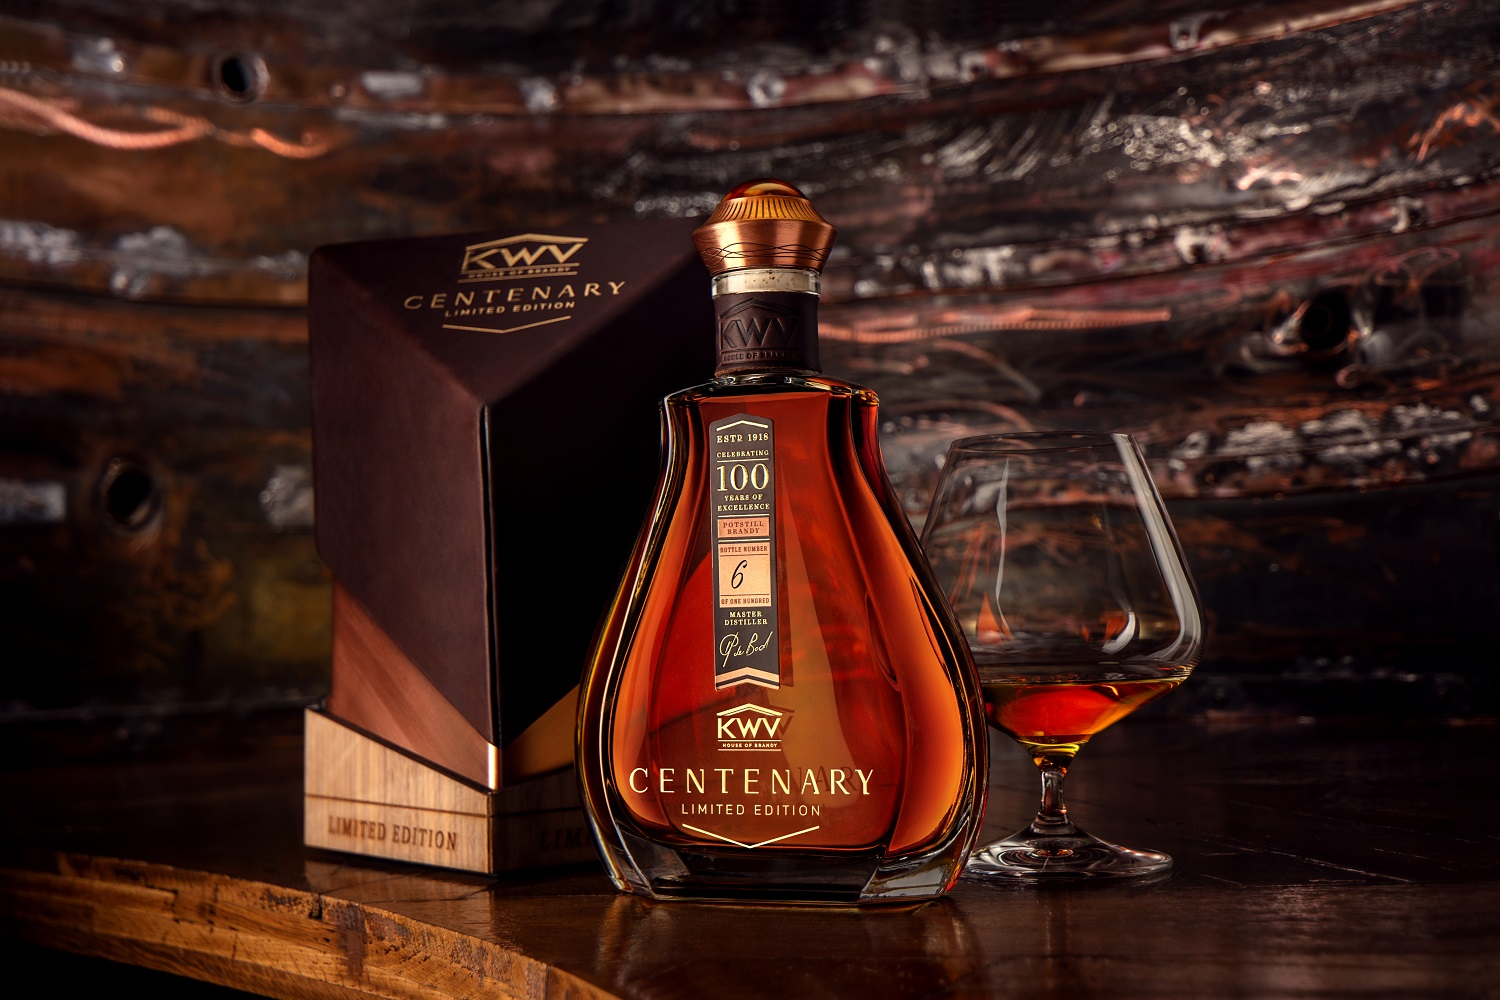 KWV's exclusive Centenary highest rated product in Platter's 2020